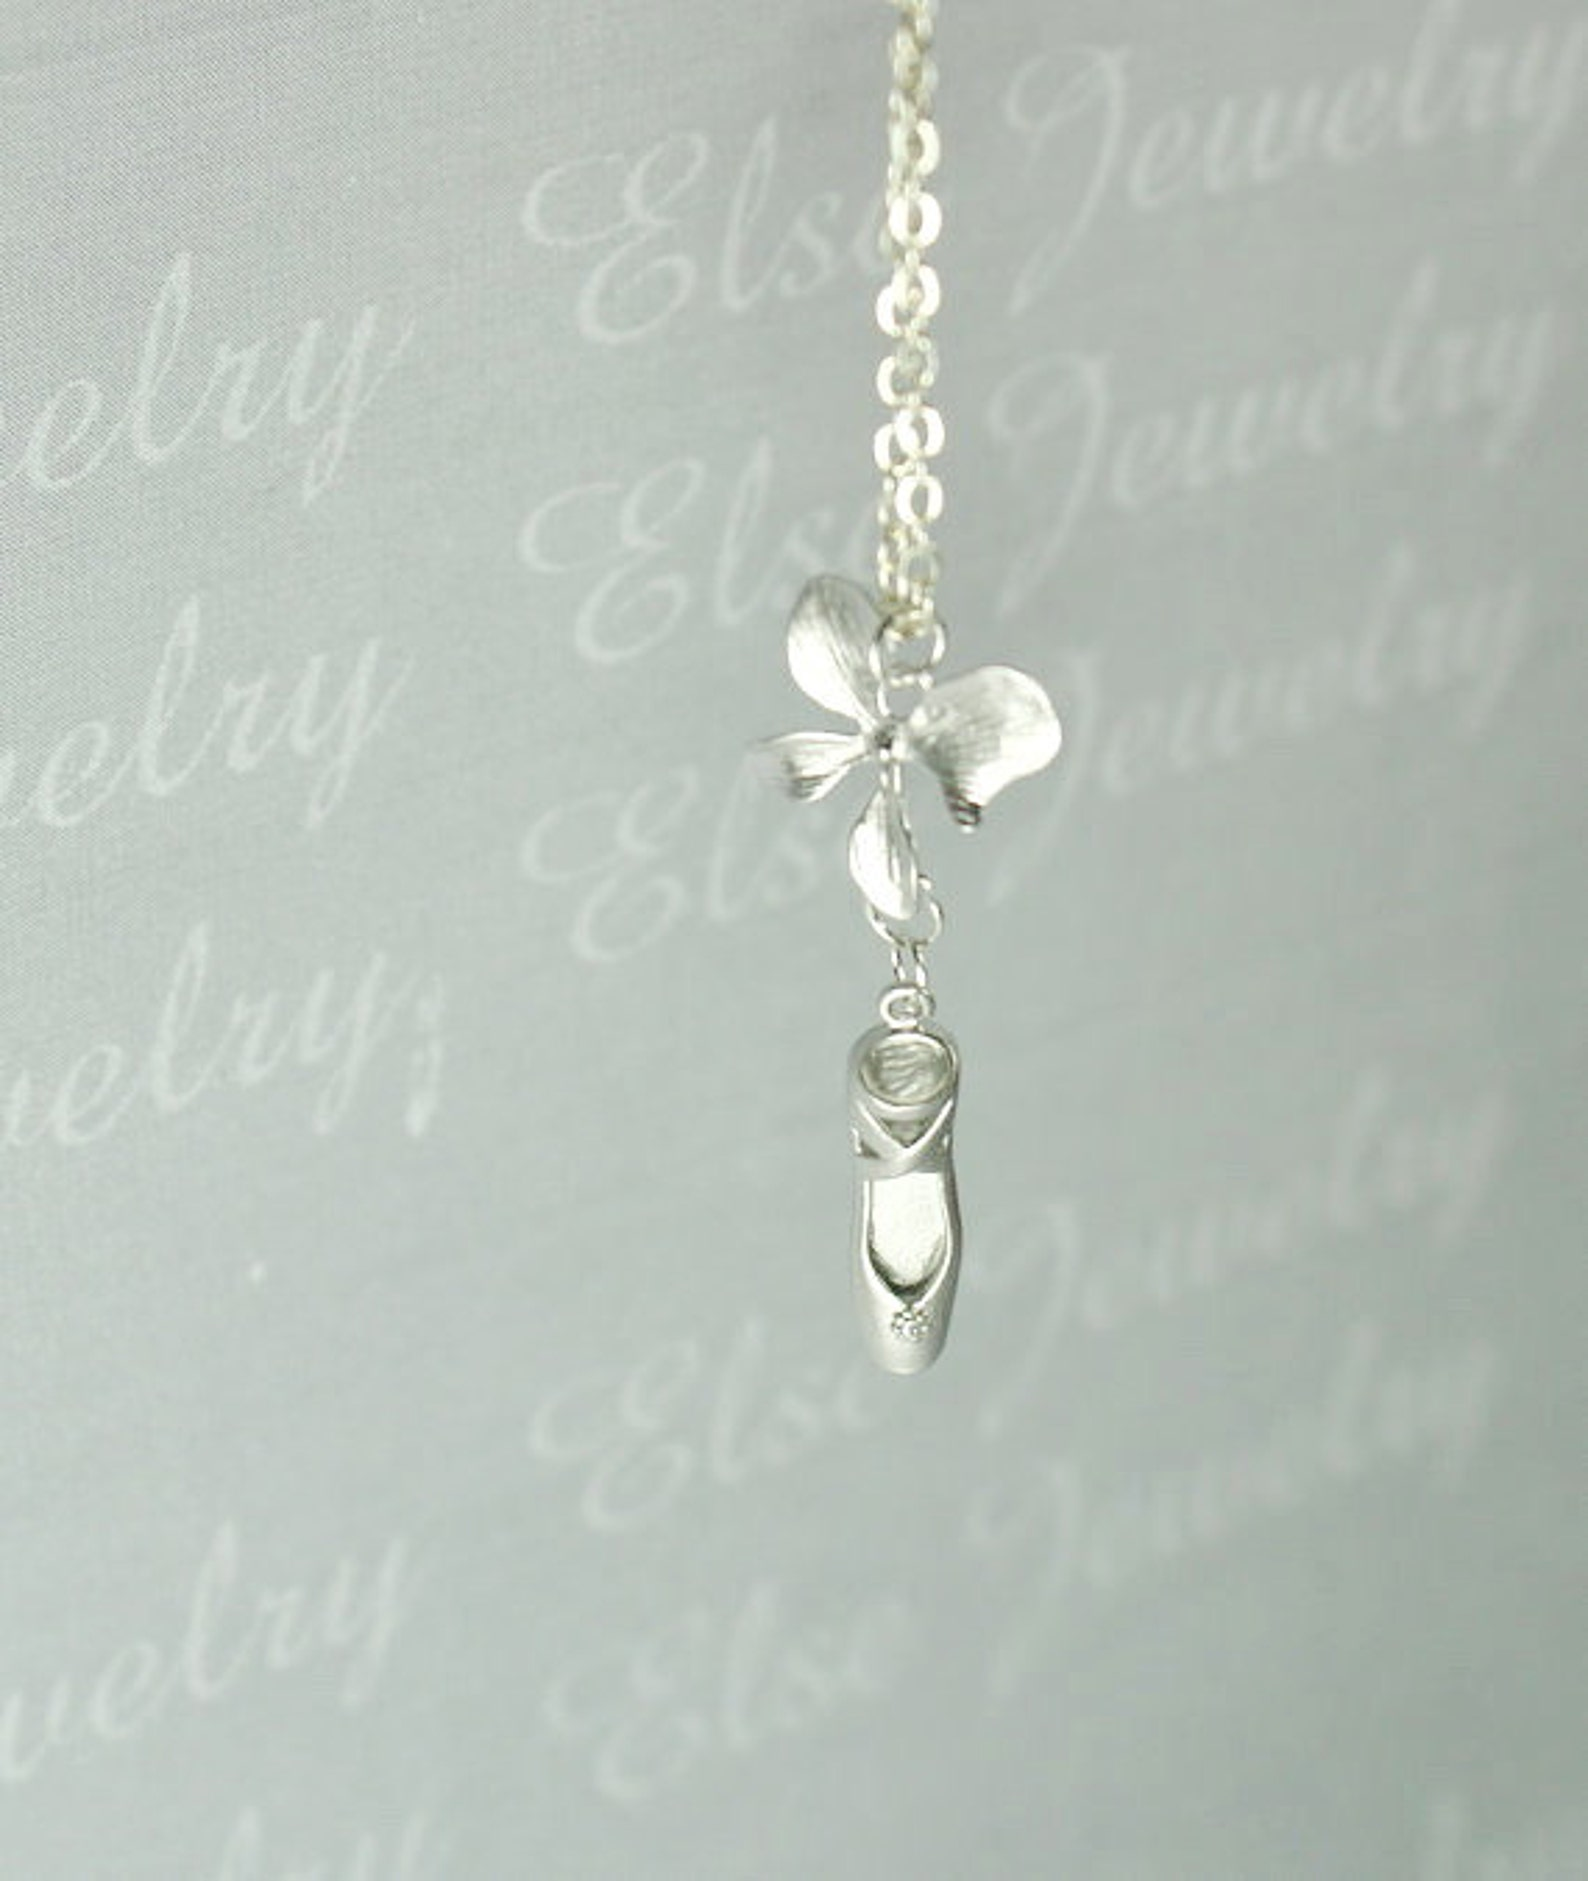 silver ballet orchid necklace - ballet slipper , pointe shoe,ballet dancer necklace,party collection ,holiday gift.ballerina dan